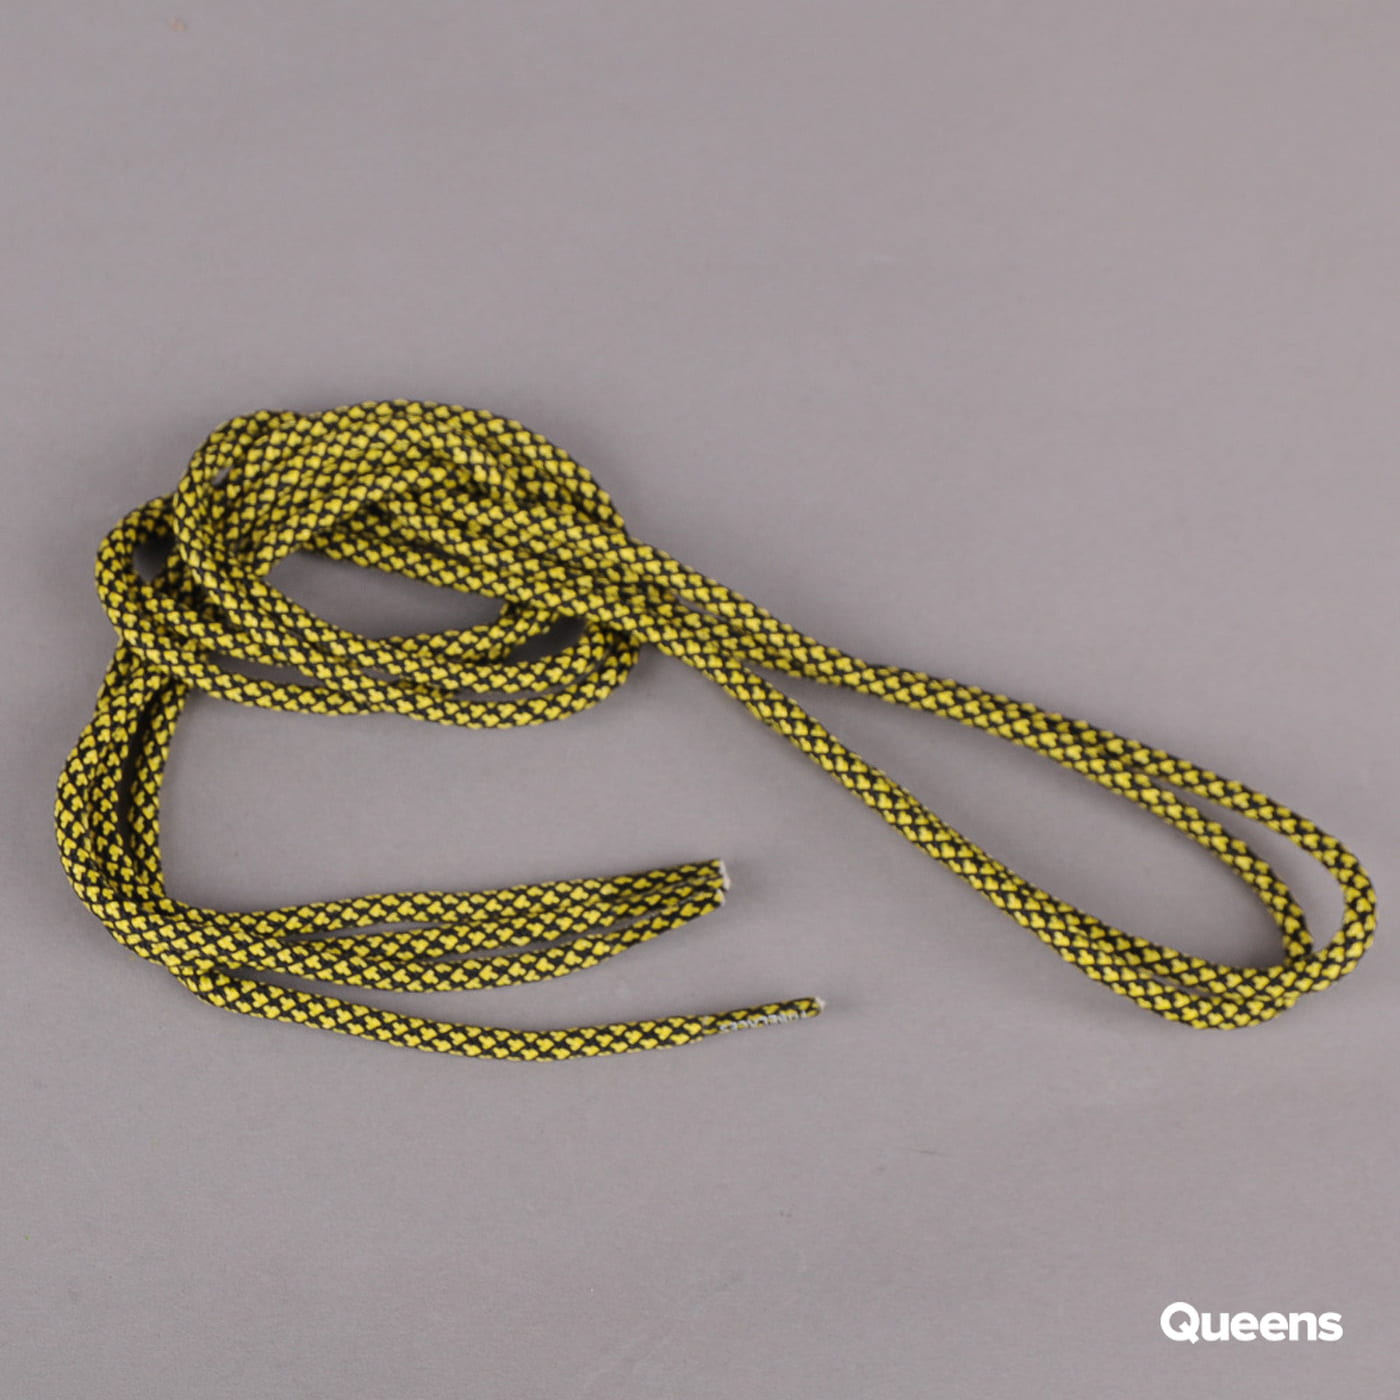 MD Tube Laces Rope Multi schwarz / gelb